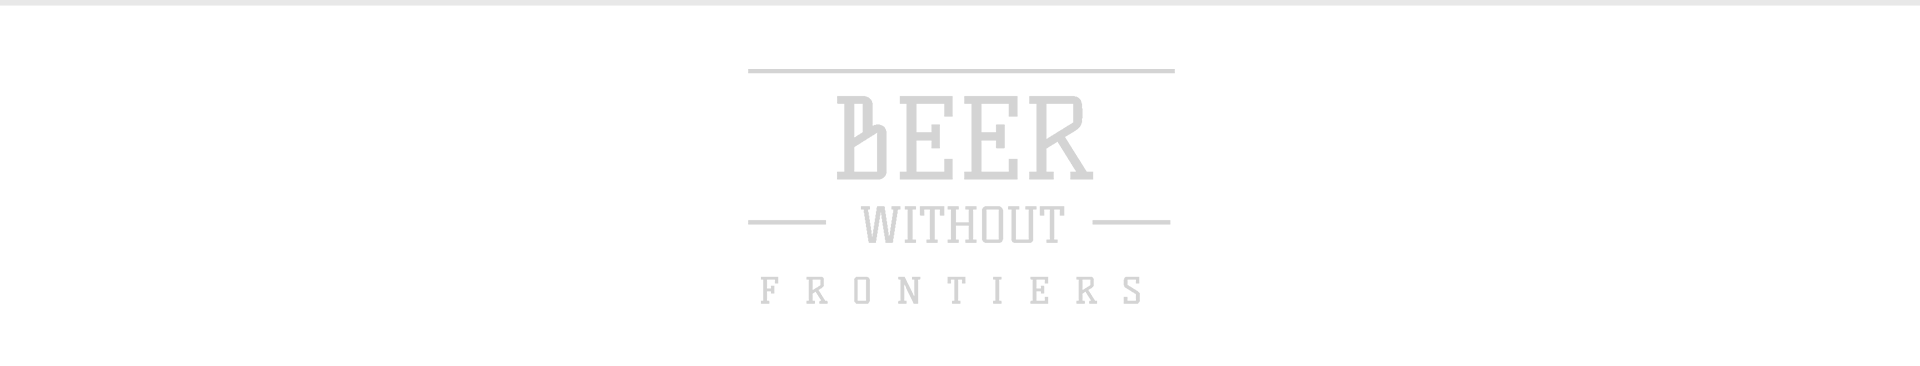 beer-without-frontiers-foot